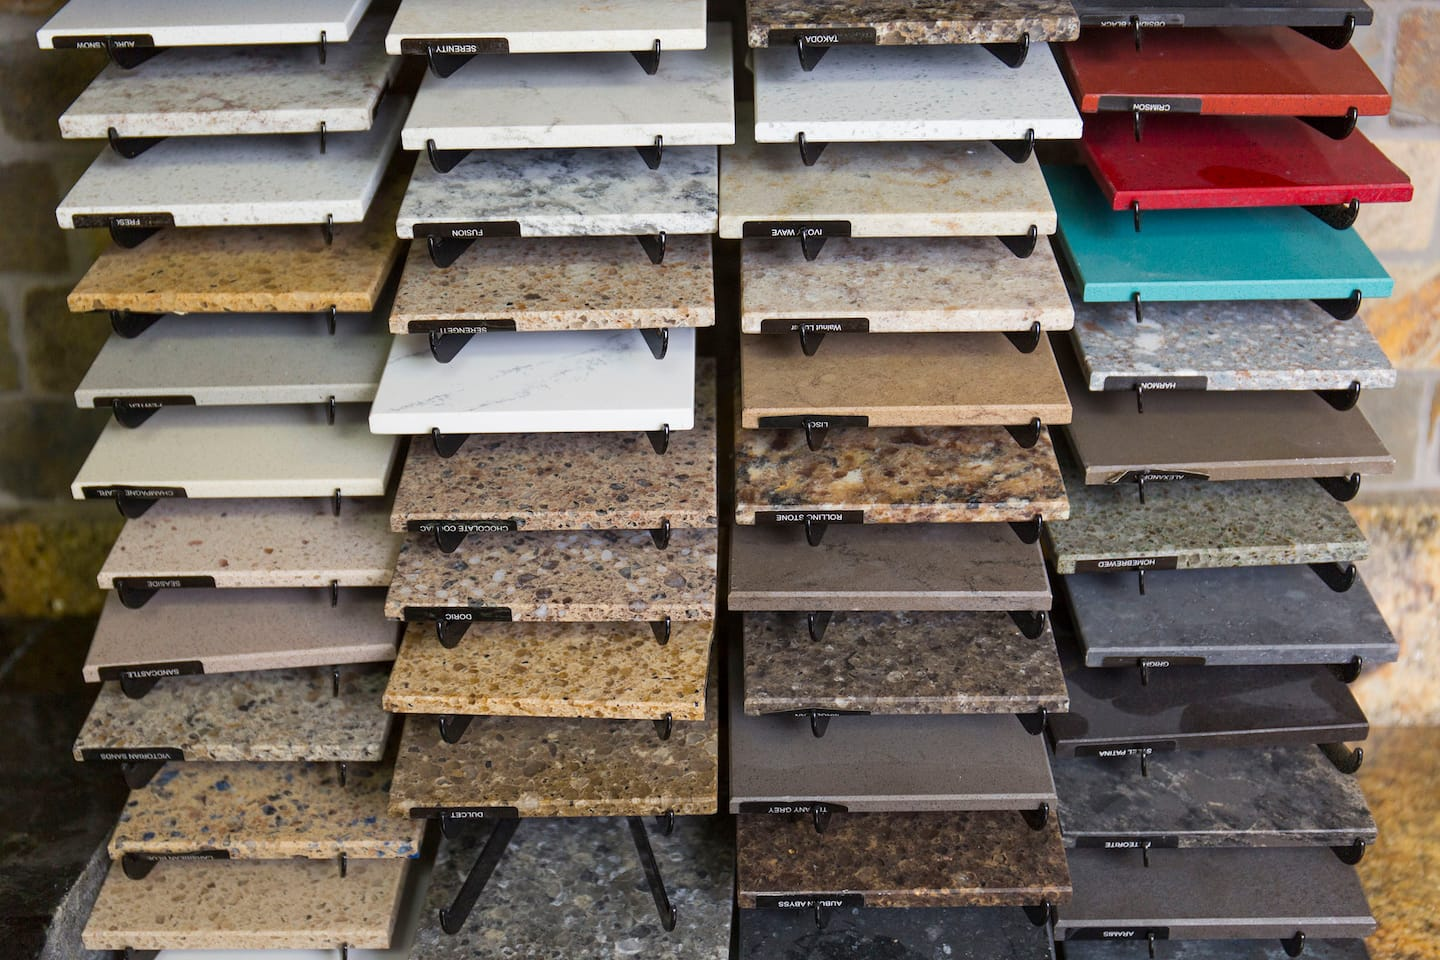 Your home improvements refference granite countertops home depot or - Your Home Improvements Refference Cheap Granite Countertops Granite Countertop Samples In A Showroom Countertopkitchen Download